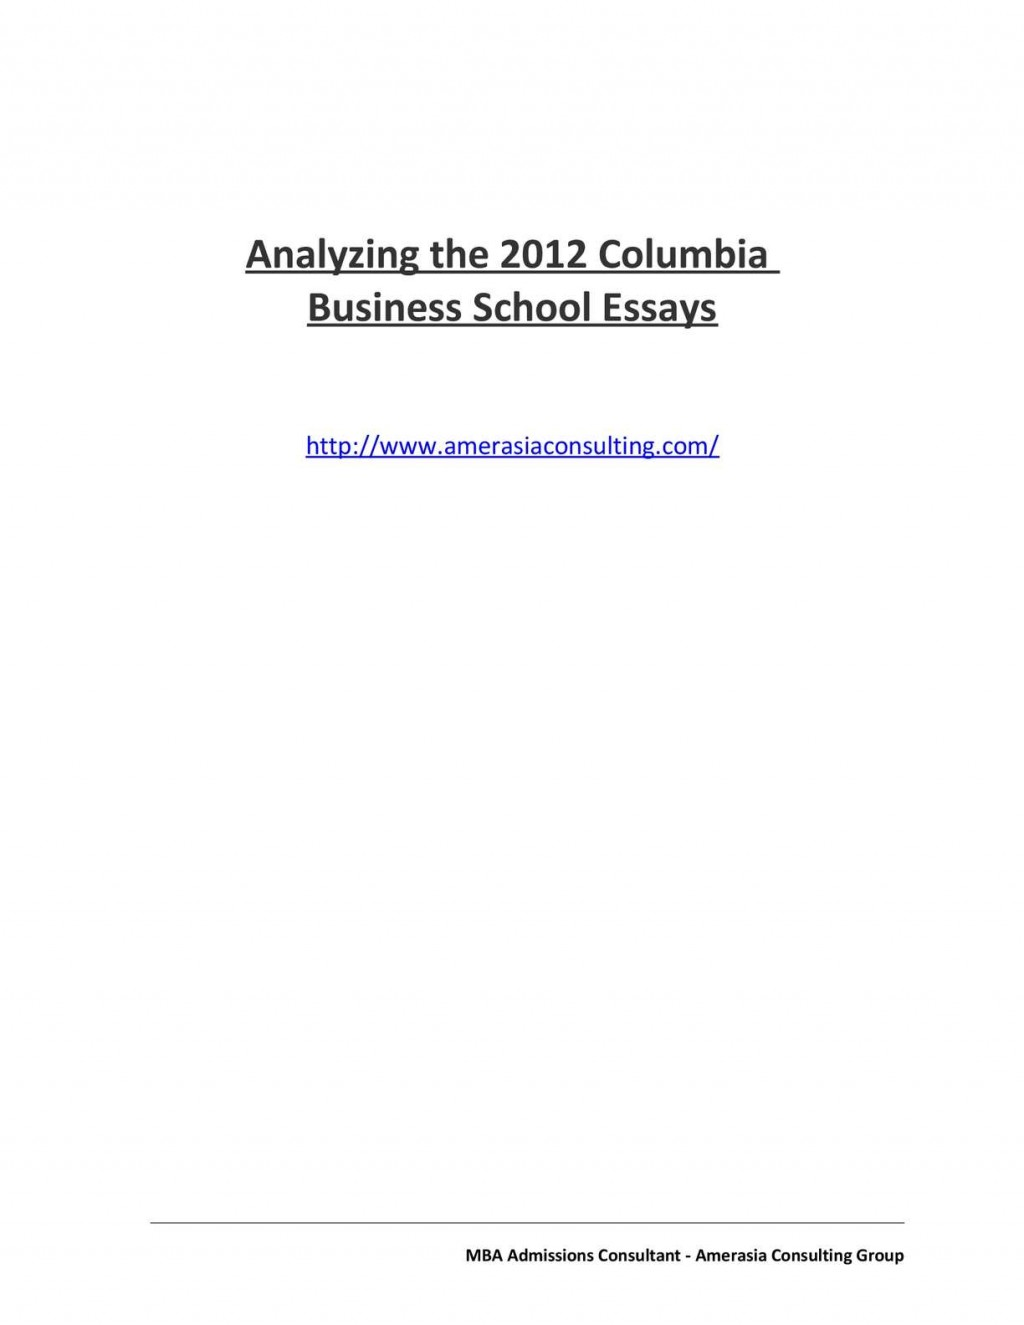 017 Essay Example Columbia Essays Analyzing The Business School Analys Admission Analysis Help Examples Shocking Mba That Worked Undergraduate Large